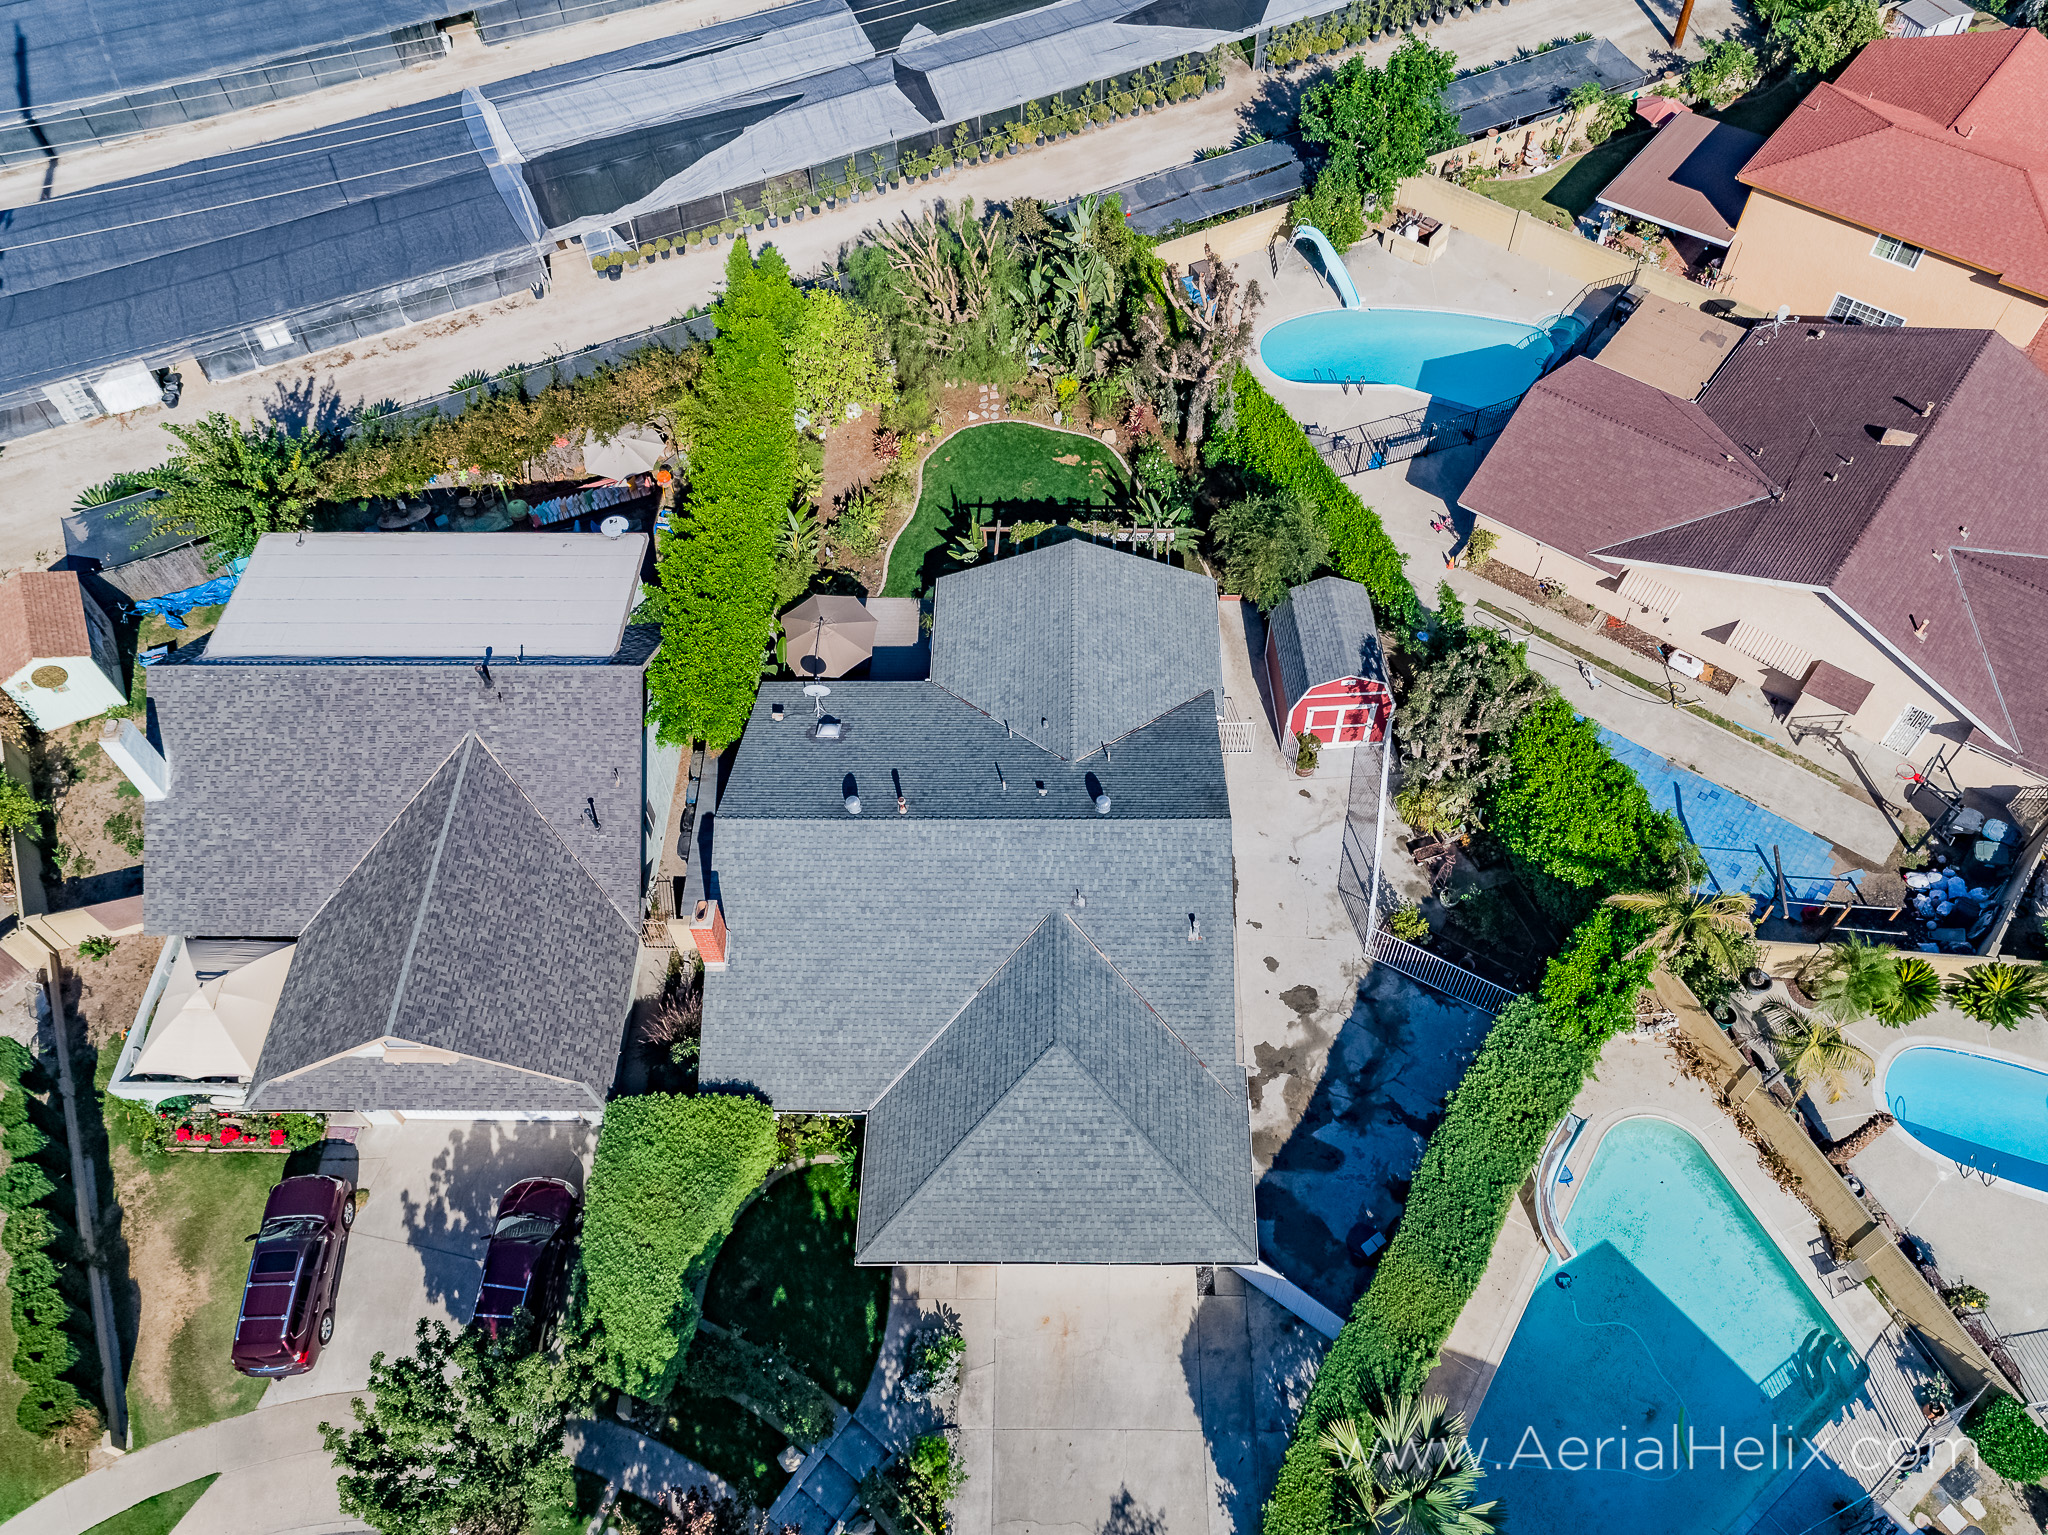 Nancy Cir Aerial - Drone Photographer-1.jpg